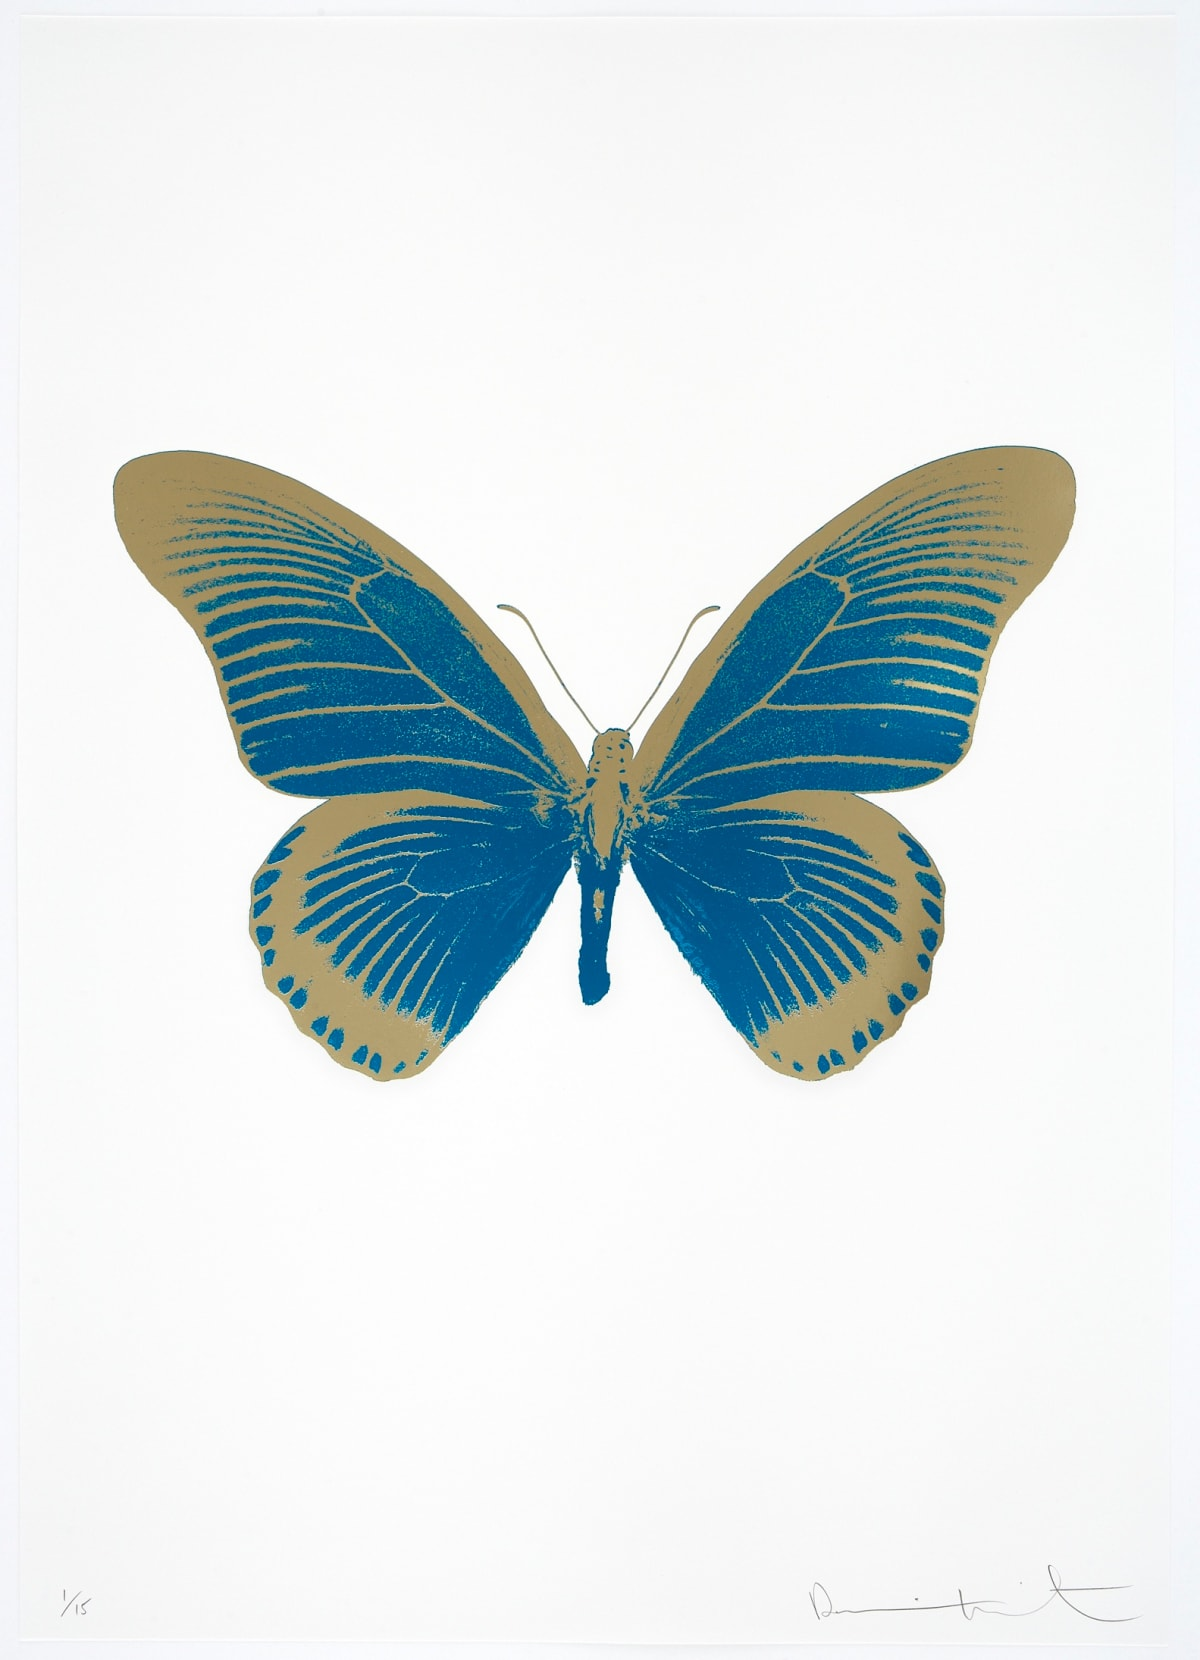 Damien Hirst The Souls IV - Turquoise/Cool Gold Damien Hirst butterfly foil print for sale Damien Hirst print for sale , 2010 2 colour foil block on 300gsm Arches 88 archival paper. Signed and numbered. Published by Paul Stolper and Other Criteria 72 x 51cm OC8014 / 1418-37 Edition of 15